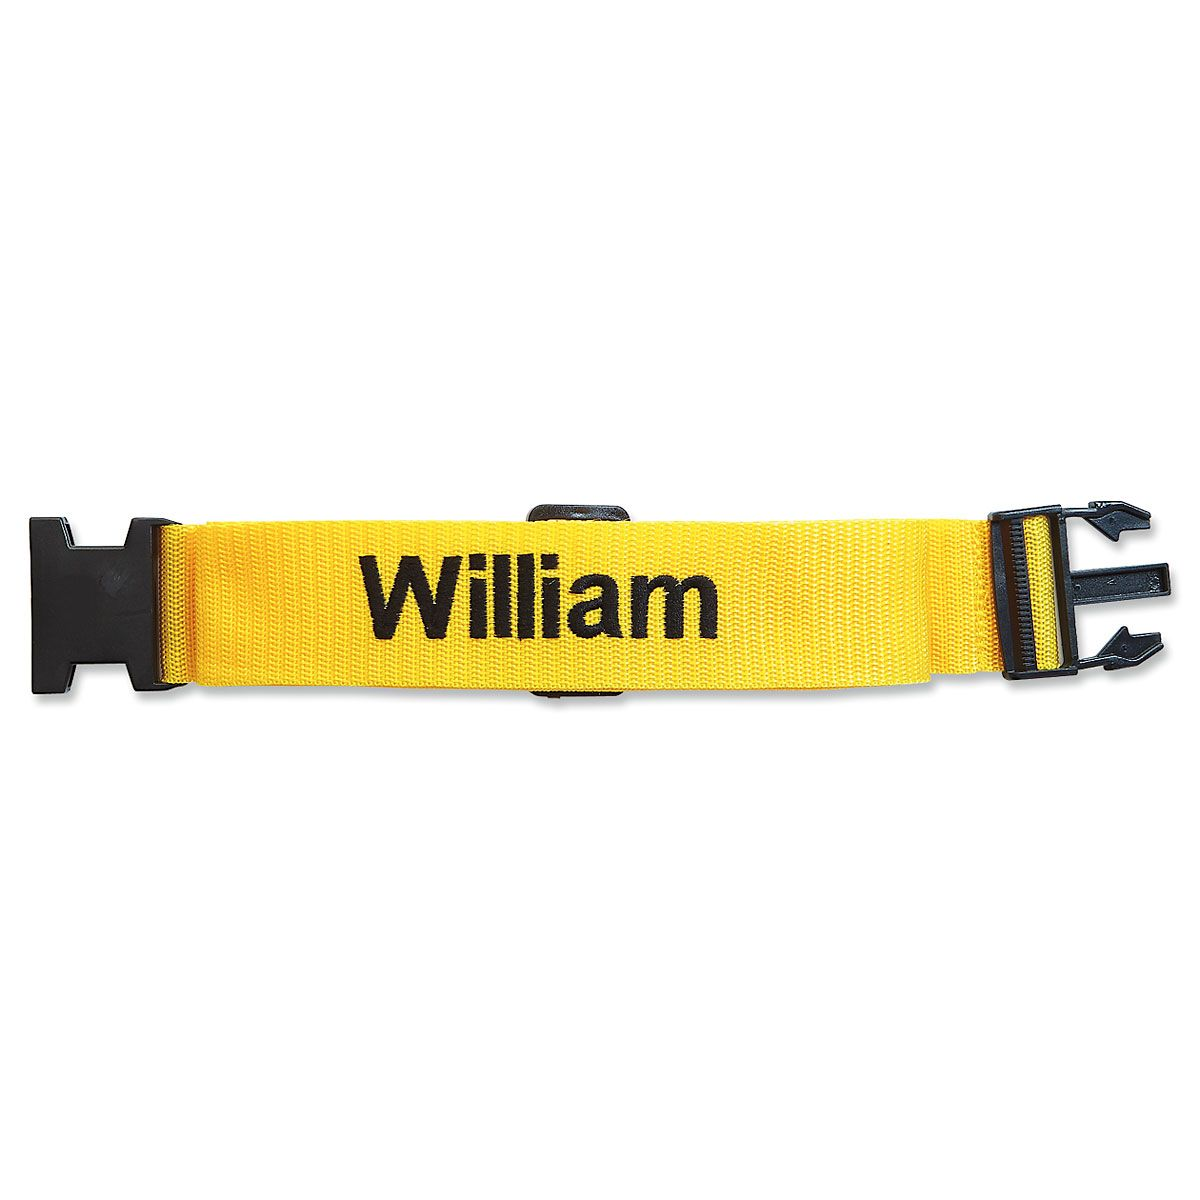 Personalized Luggage Strap - Yellow